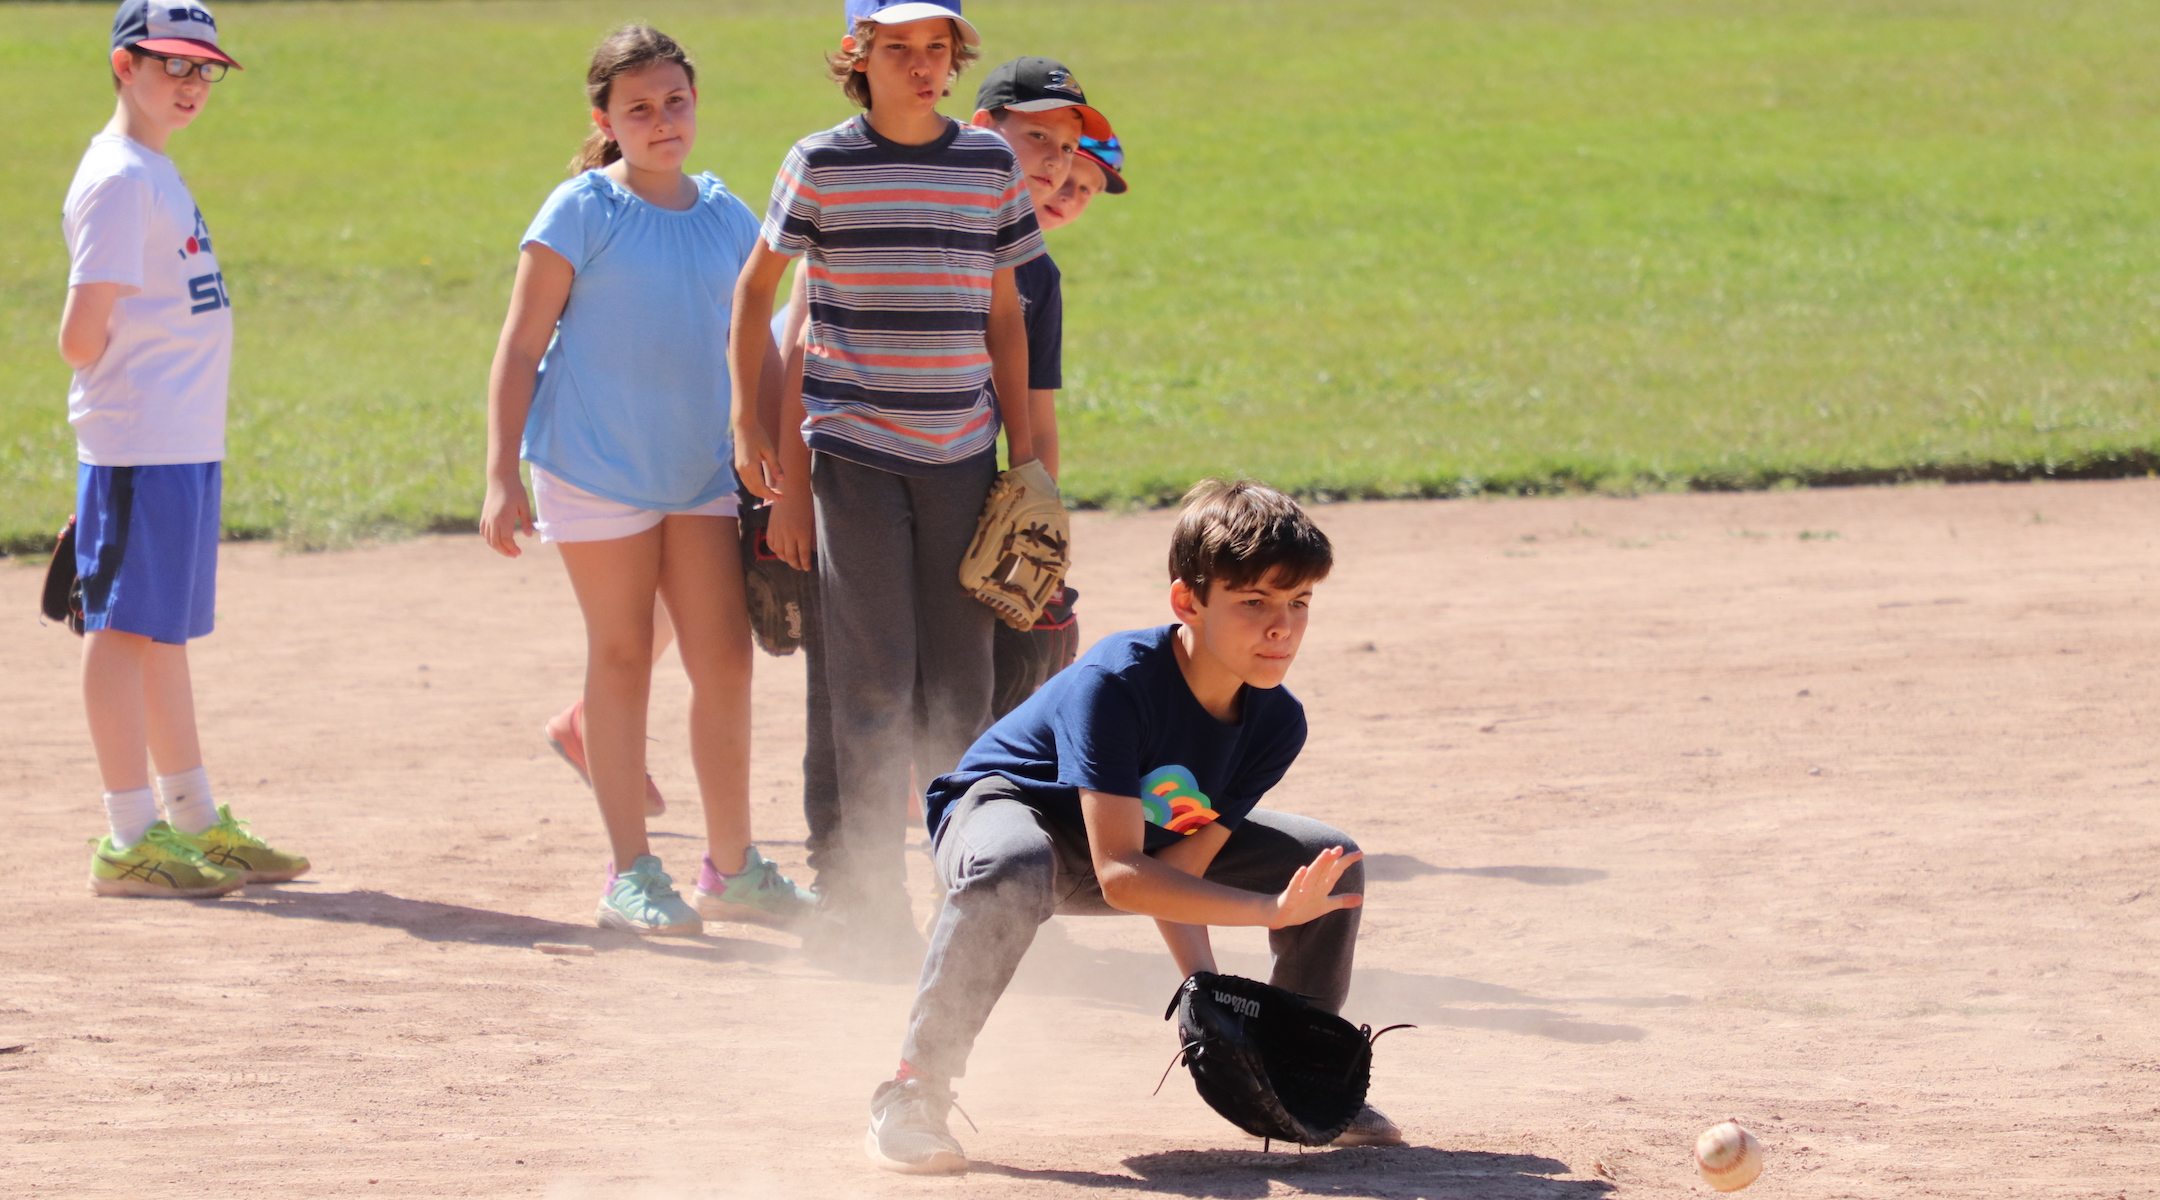 Kids play baseball at Camp Ramah in California. The camp will face a significan shortfall if it needs to refund all of its tuition this year. (Courtesy of Ramah in California)